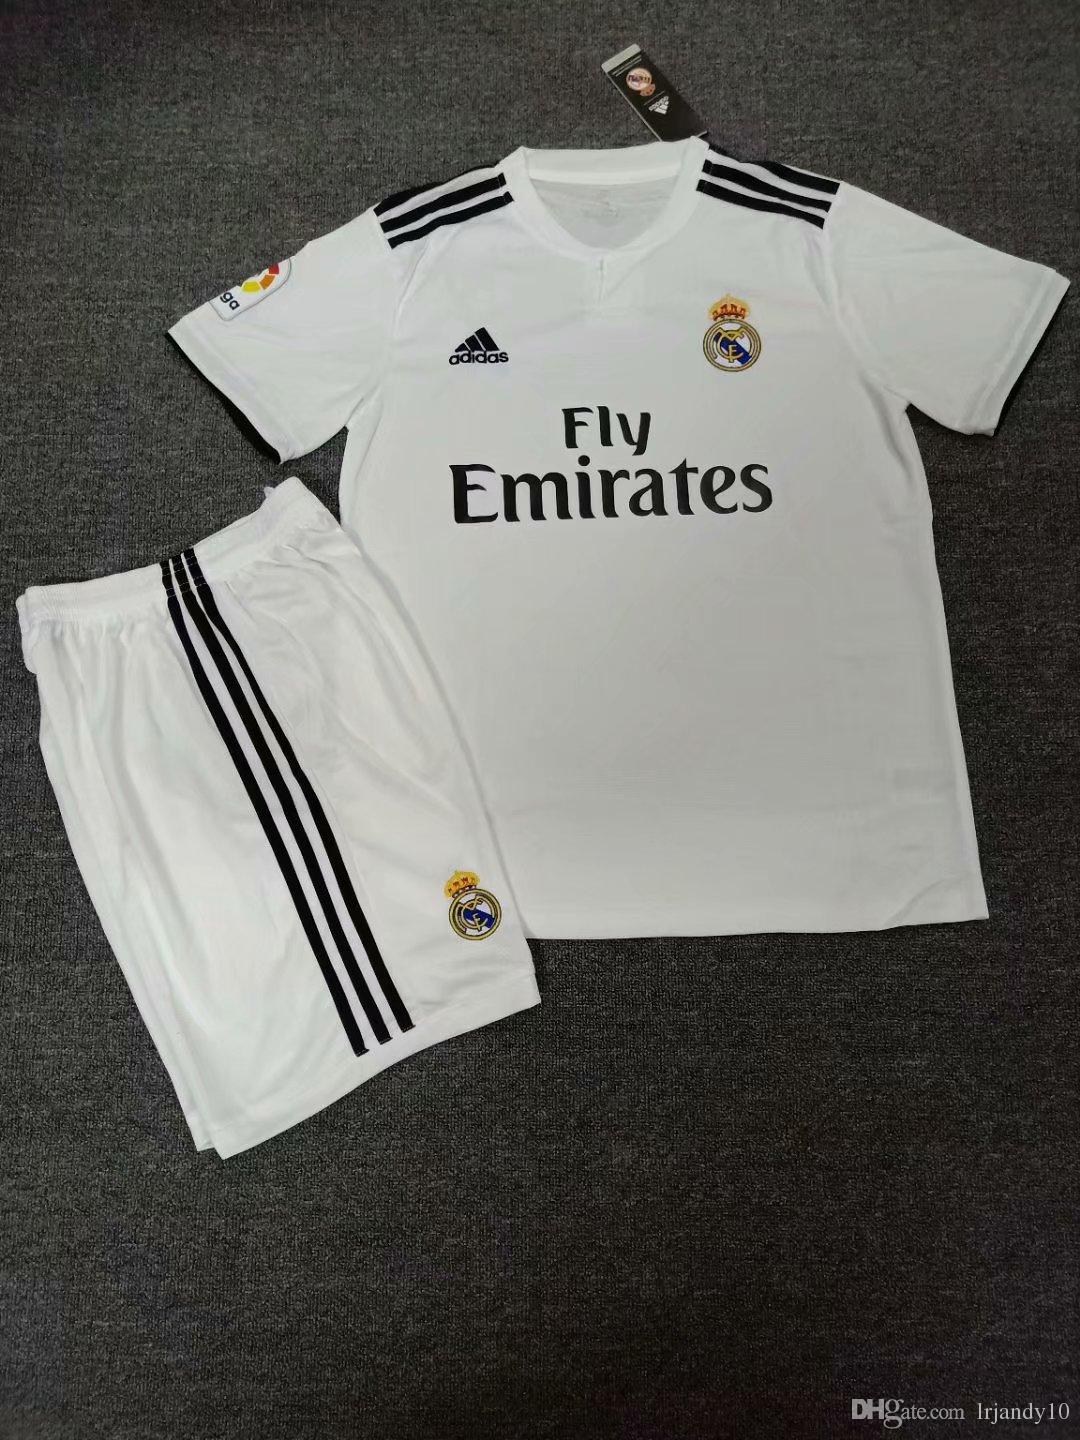 a6d9f17cc 2019 2018 2019 Kids Kit Real Madrid Soccer Jersey 18 19 Youth Boy Child  BALE Modric Kroos BENZEMA ISCO Home Away Jersey 3 12T With Sock From  Lrjandy10